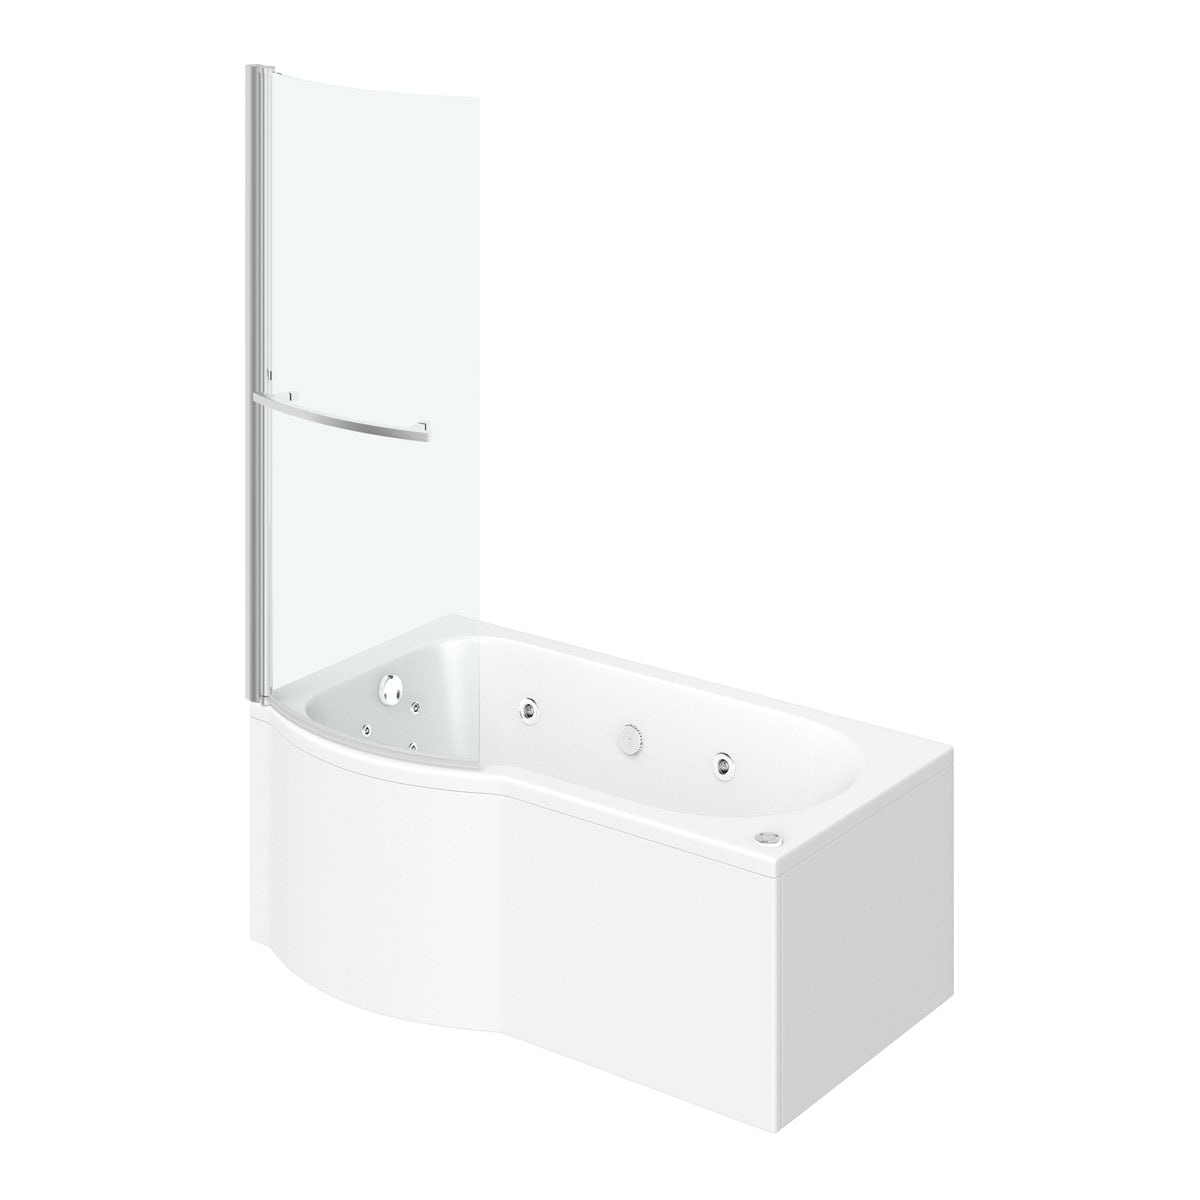 P Shaped Left Handed 12 Jet Whirlpool Shower Bath With Front Panel And Screen Victoriaplum Com